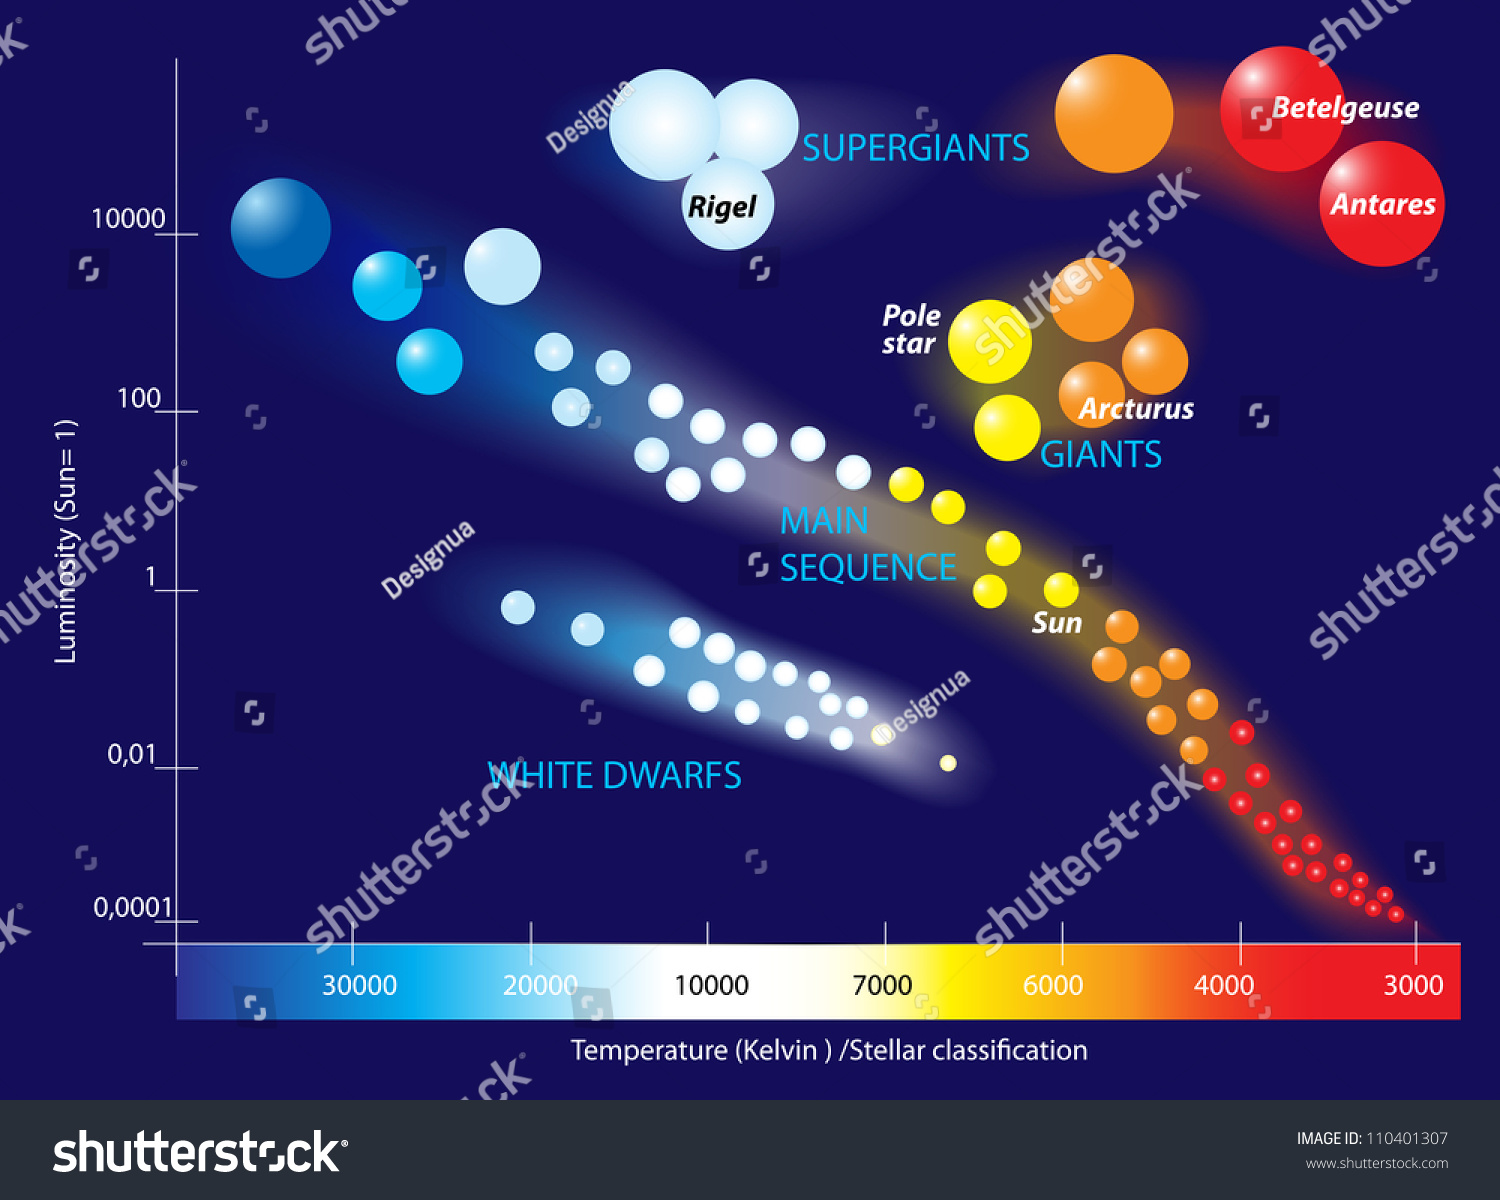 Hertzsprung russell diagram scatter graph stars stock vector the hertzsprung russell diagram is a scatter graph of stars showing the relationship between the stars pooptronica